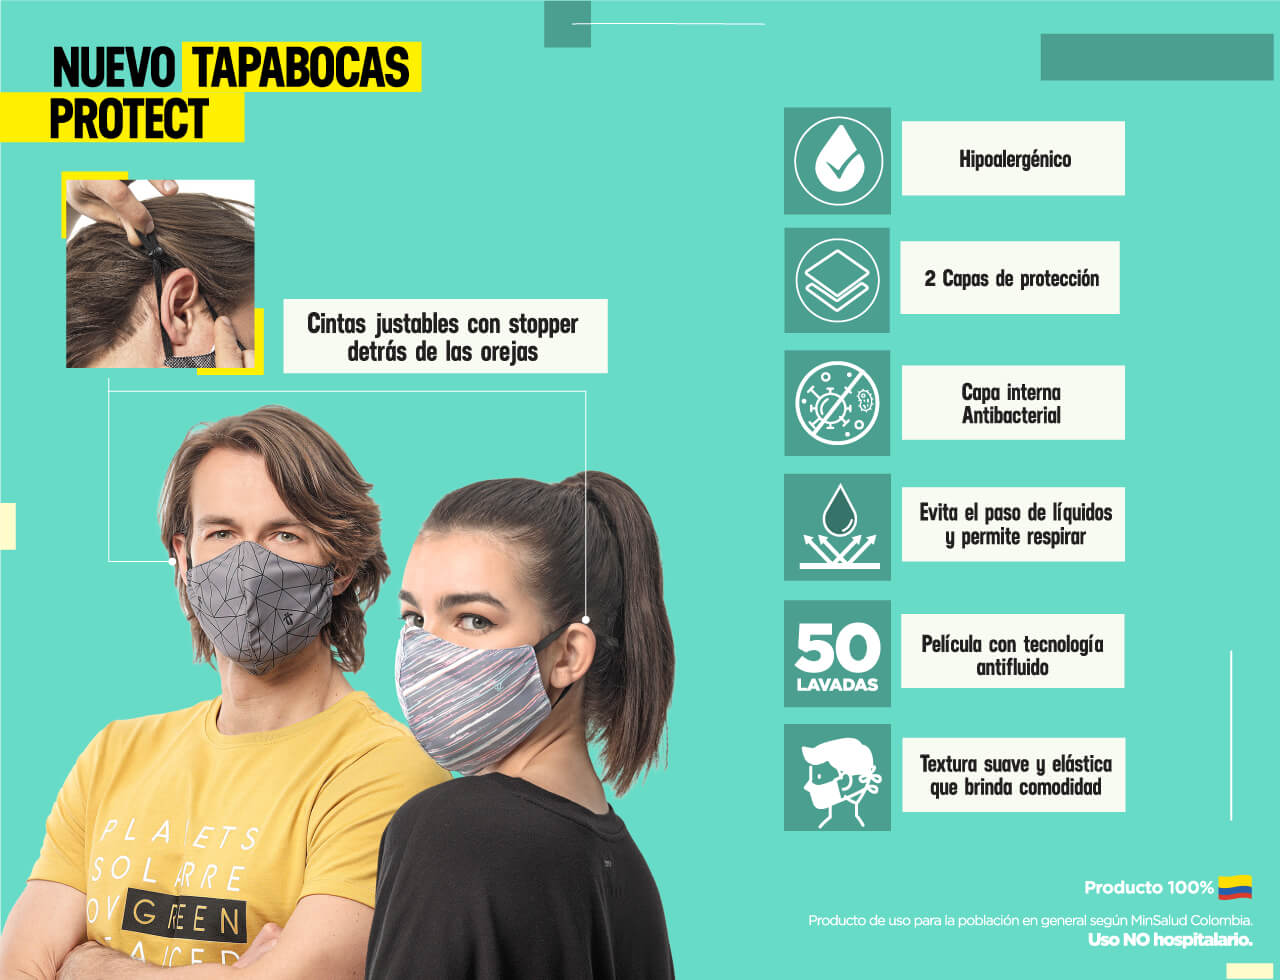 Tapabocas be safe antifluido